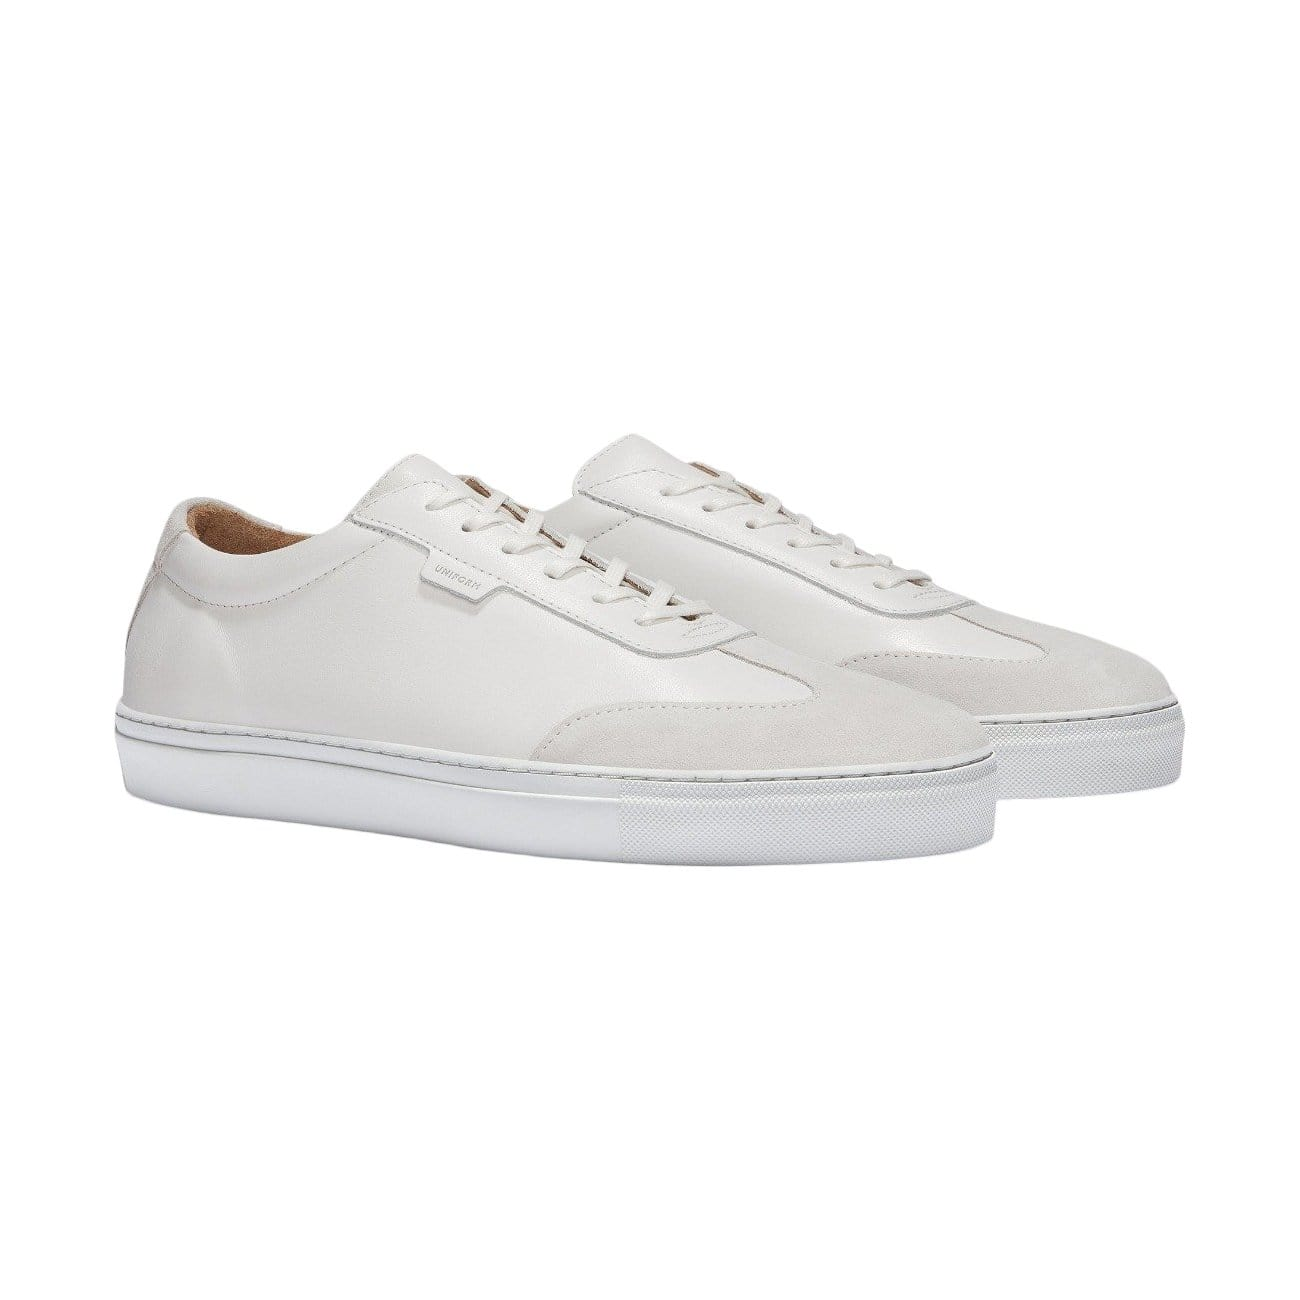 Women's SERIES 3 White Leather Sneaker